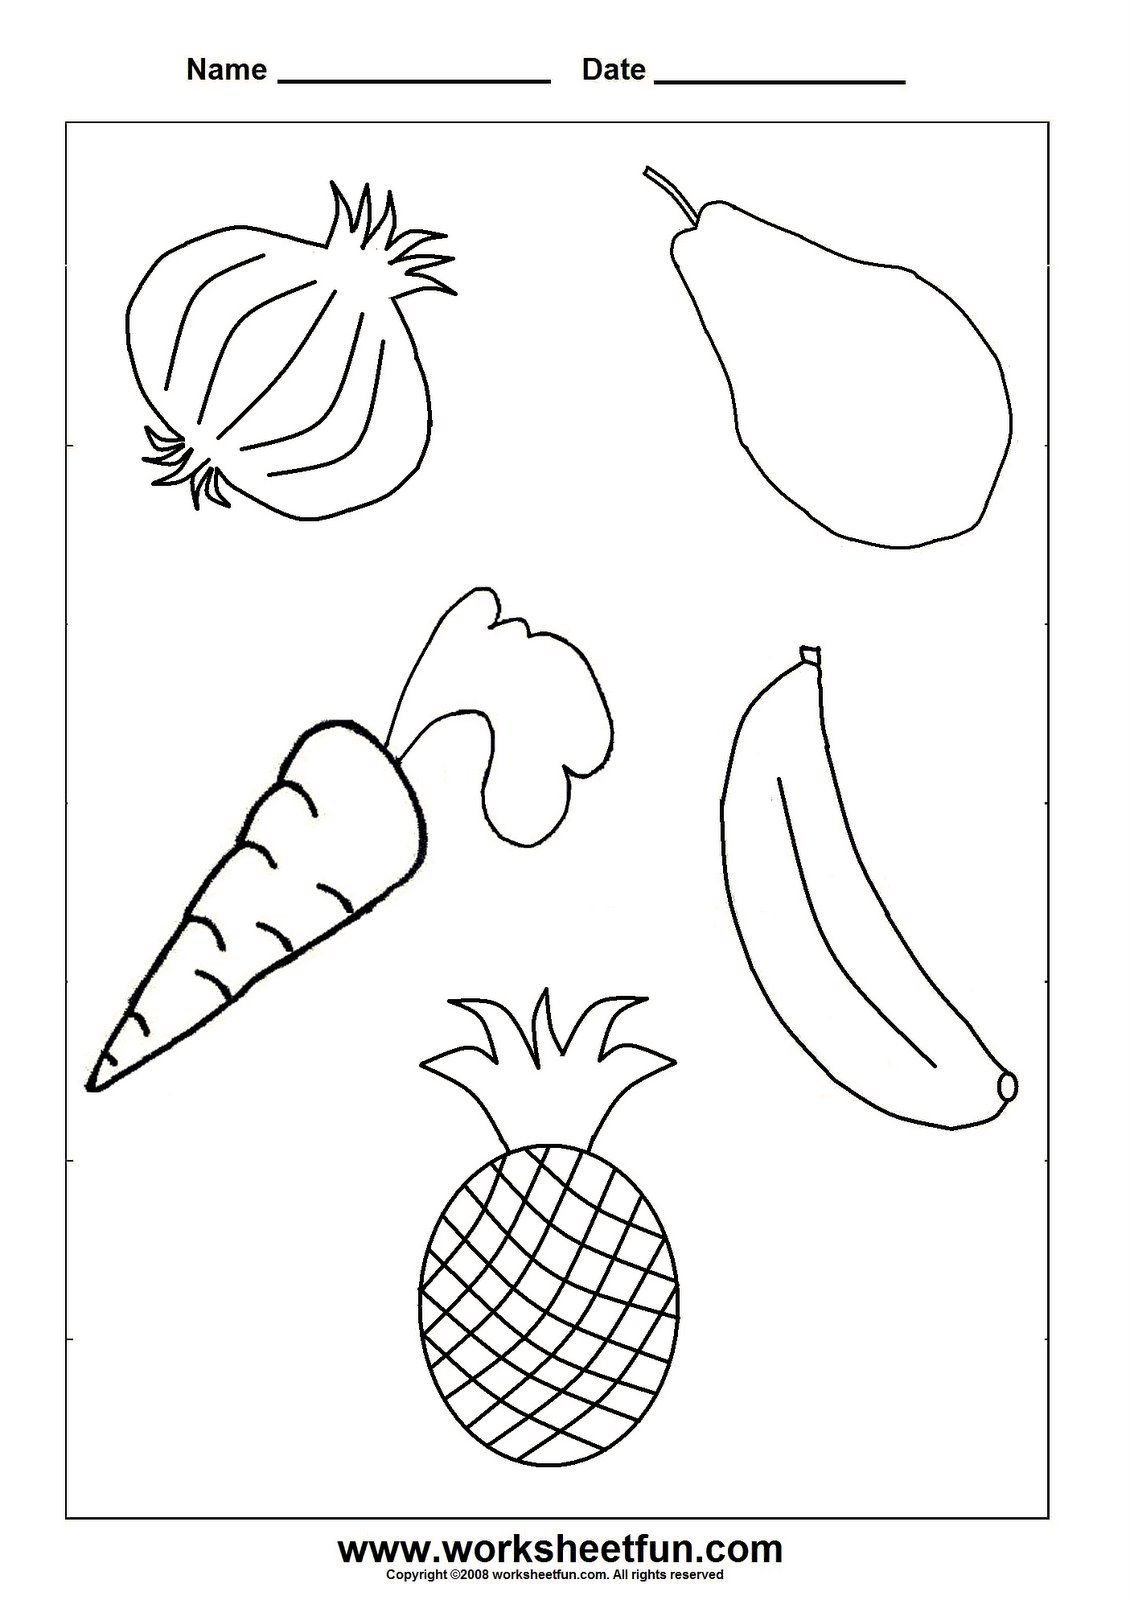 Preschool Fruits and Vegetables Worksheets Тема My Food садочок